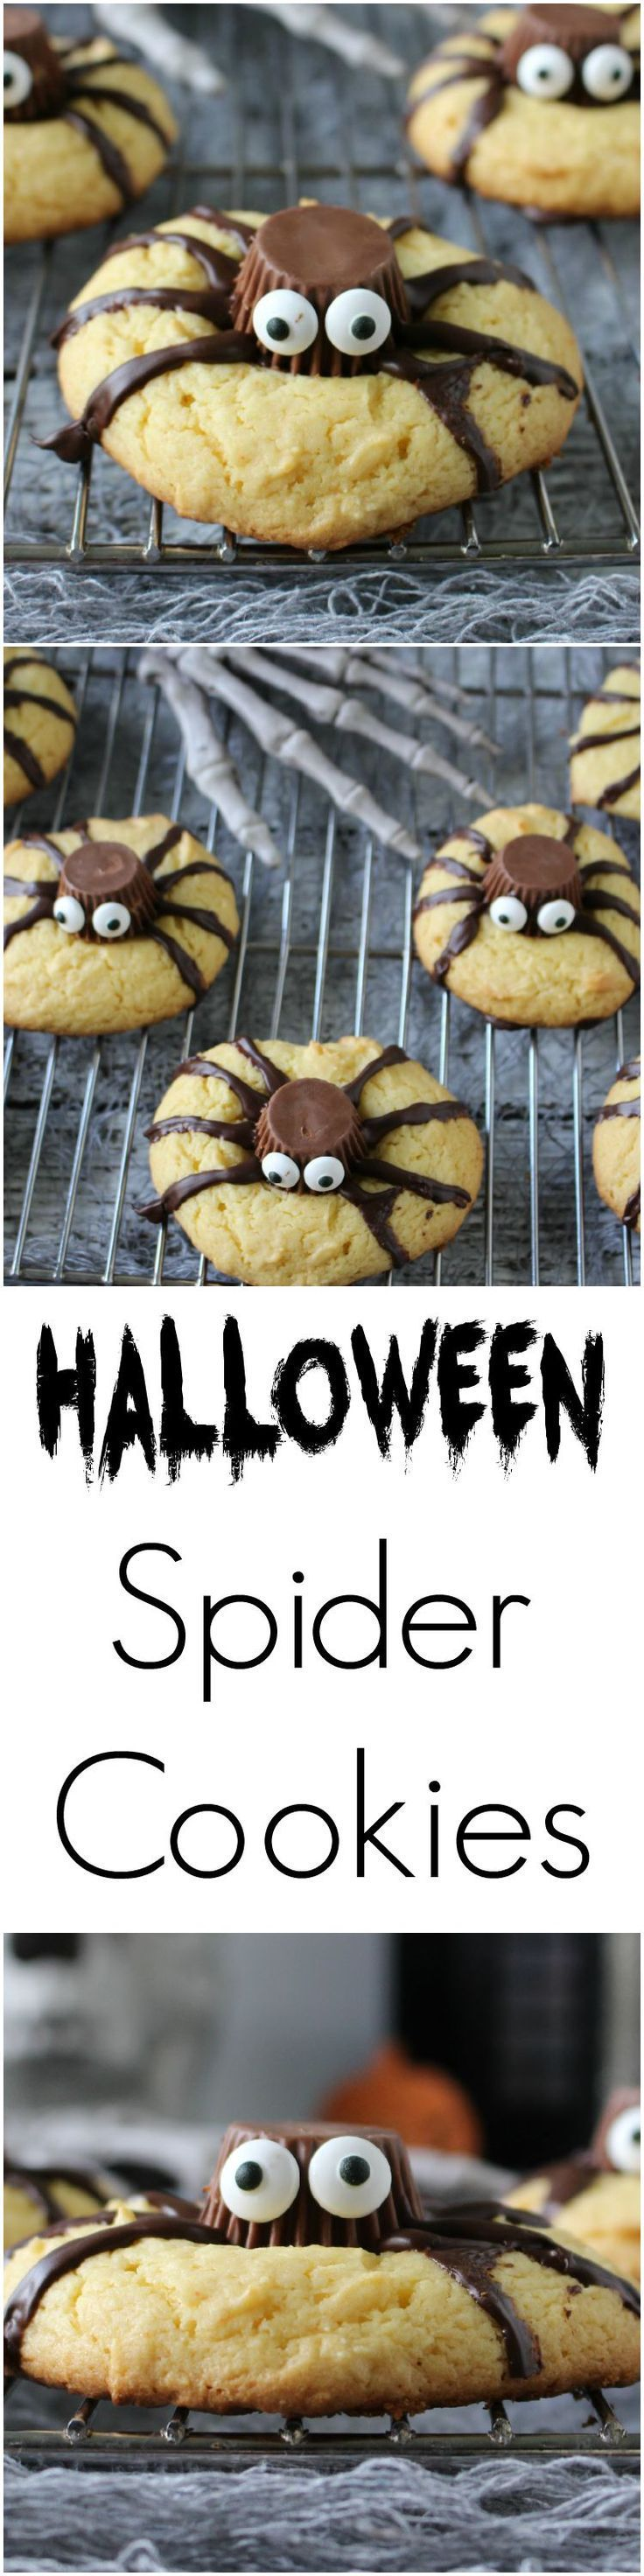 Easy Halloween Spider Cookies - a super easy treat for Halloween